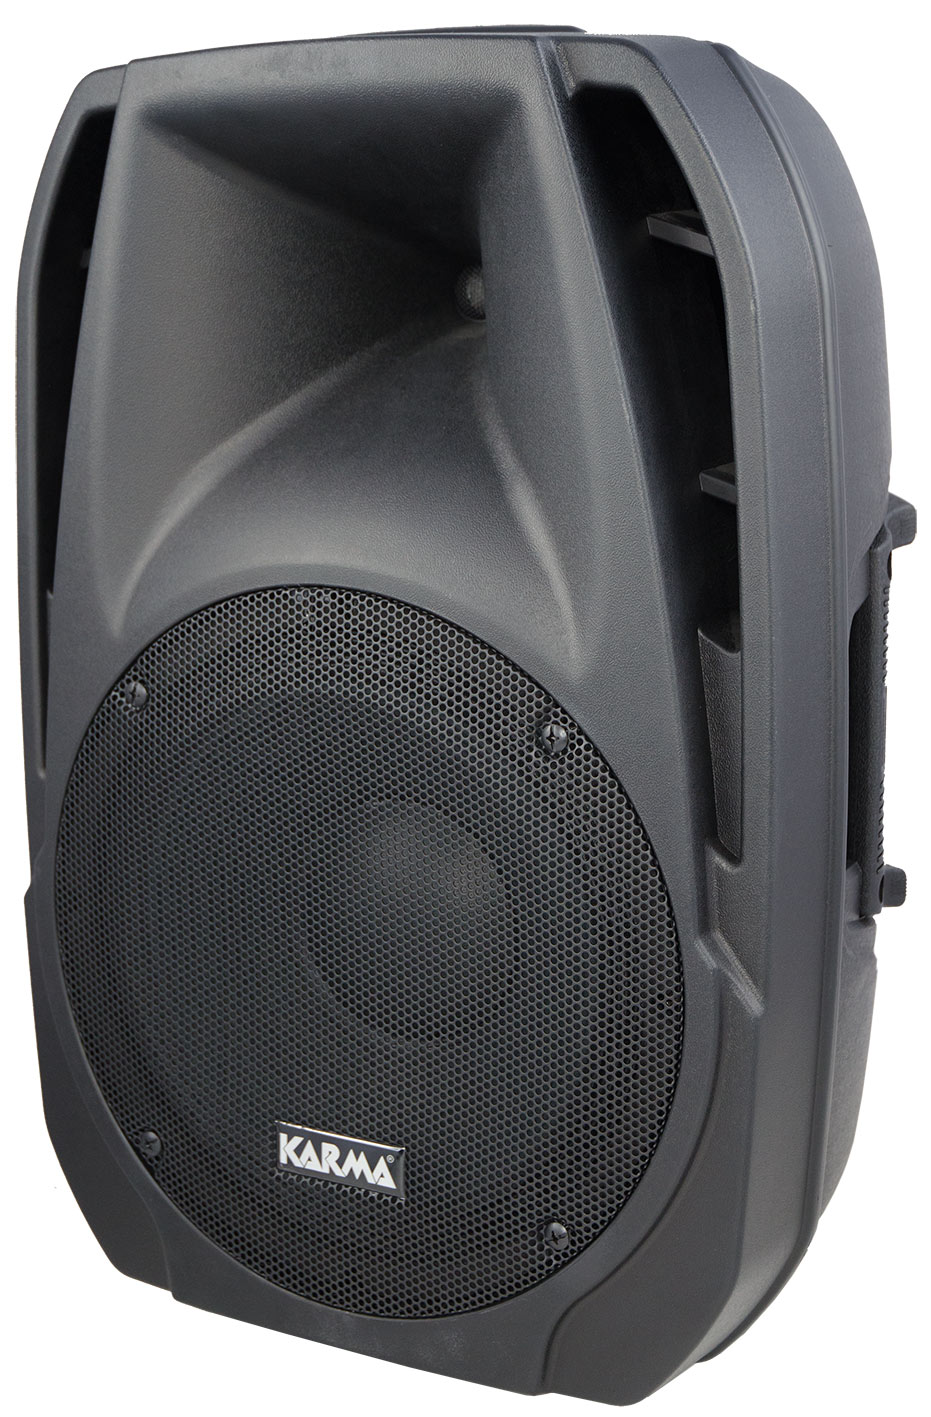 Box Bi-amplificato digitale 430W KARMA BX 6912A